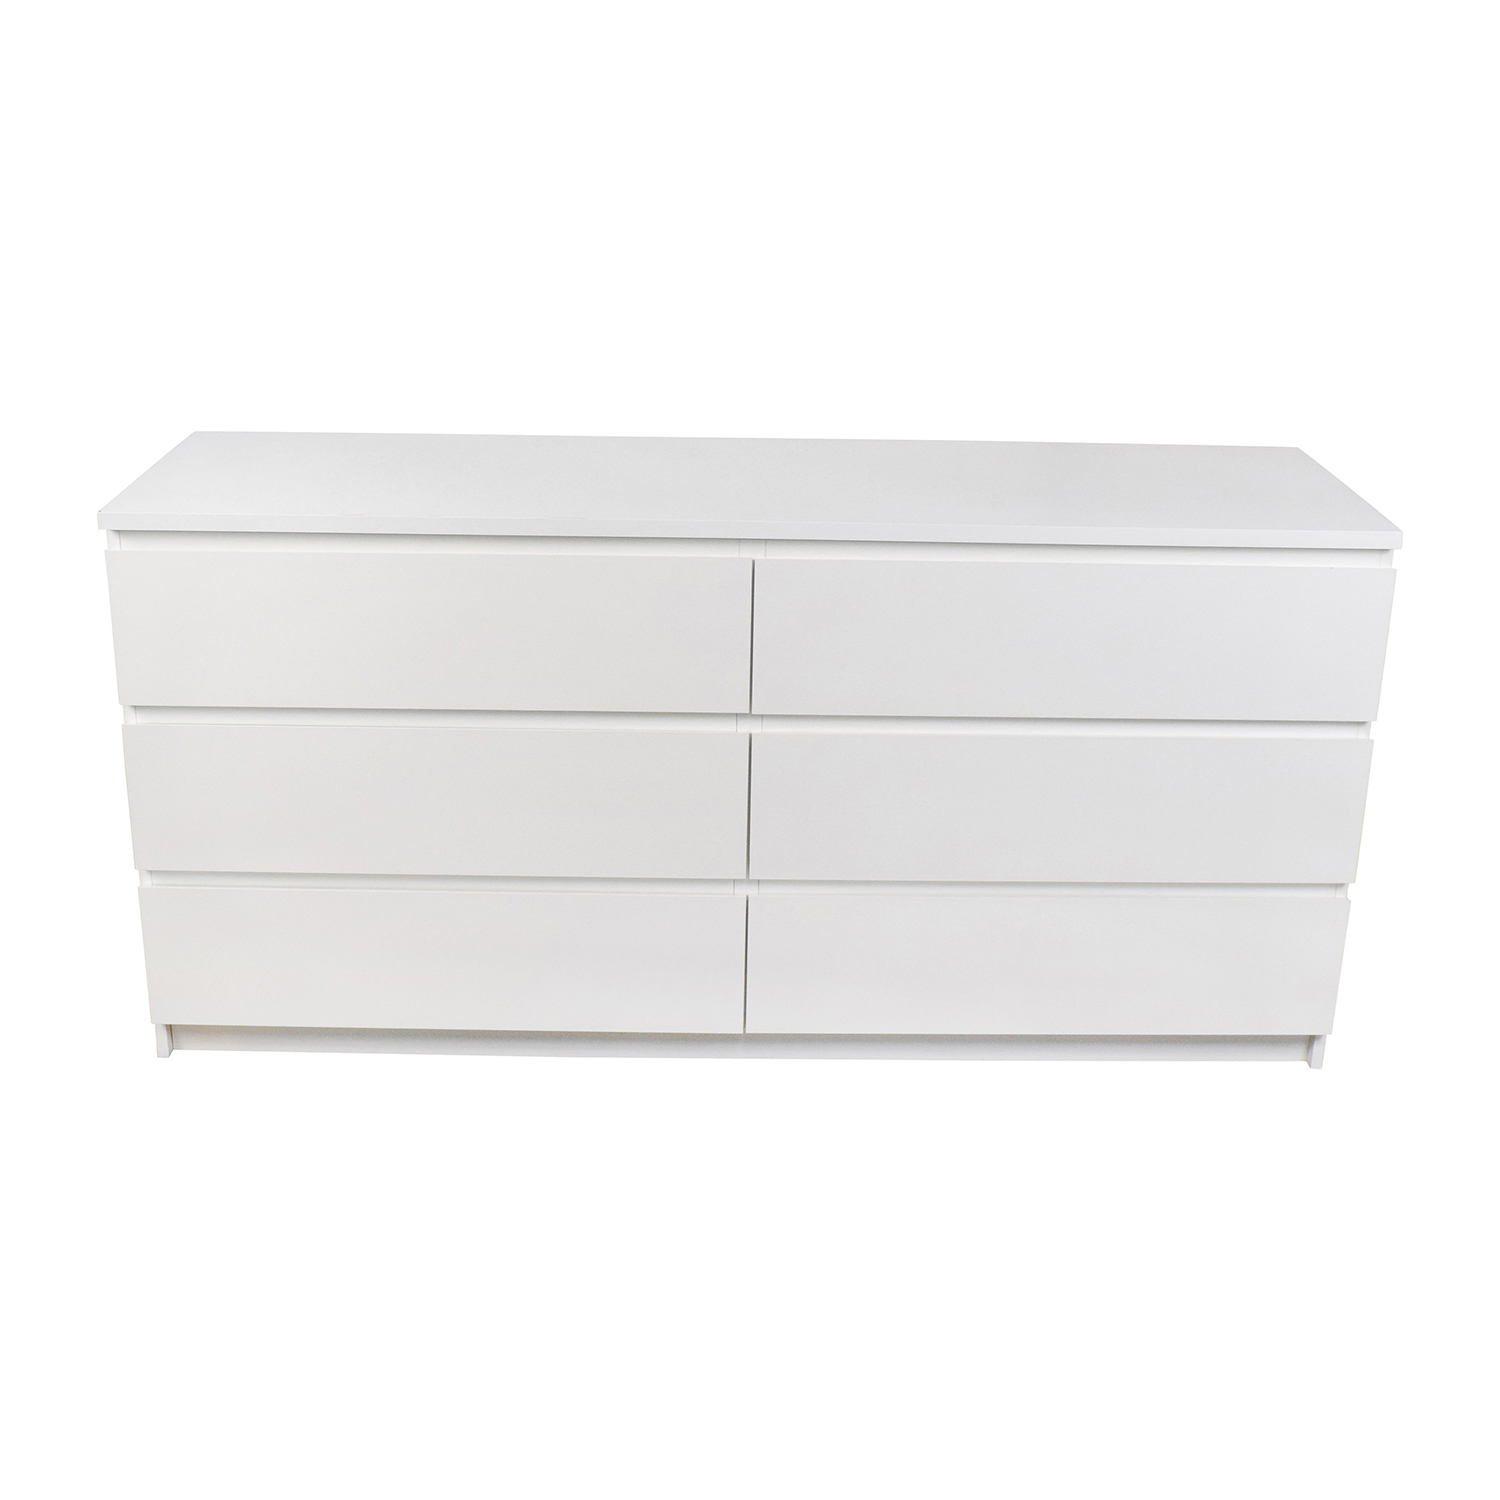 IKEA IKEA Malm 6-Drawer White Dresser discount